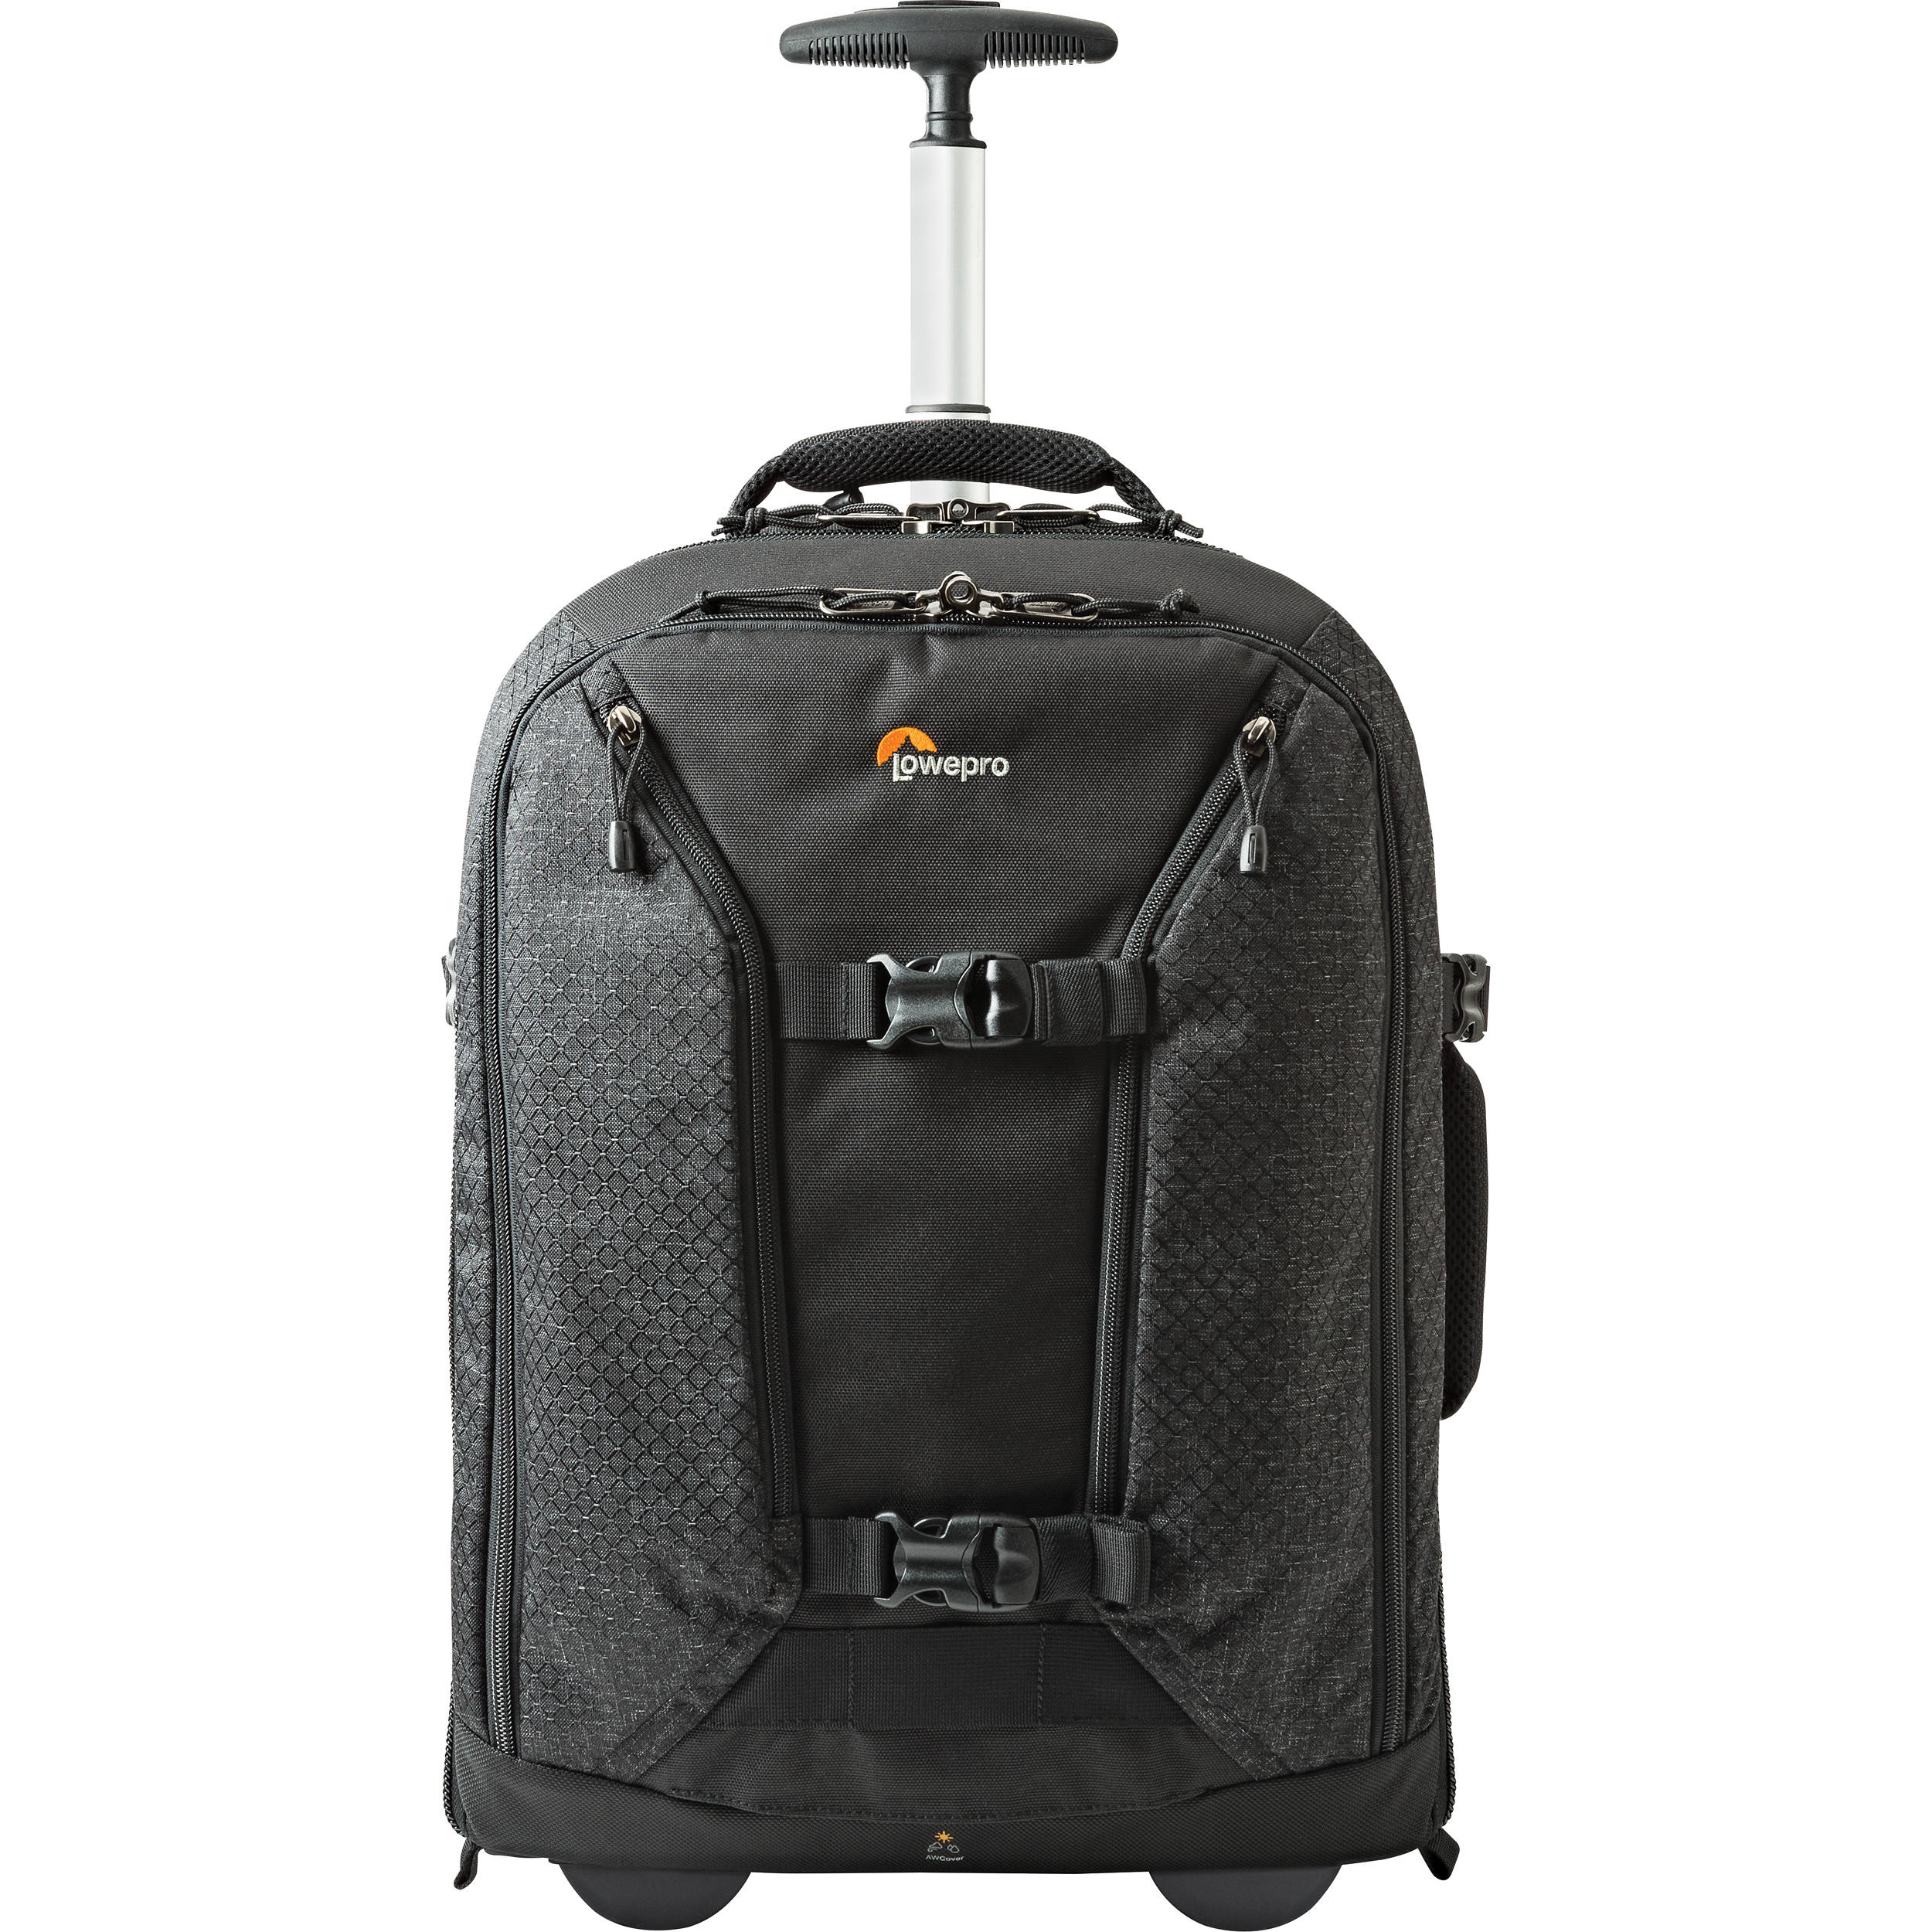 bbfc53ba15 Lowepro Pro Runner RL x450 AW II Backpack (Black) LP36876 B&H